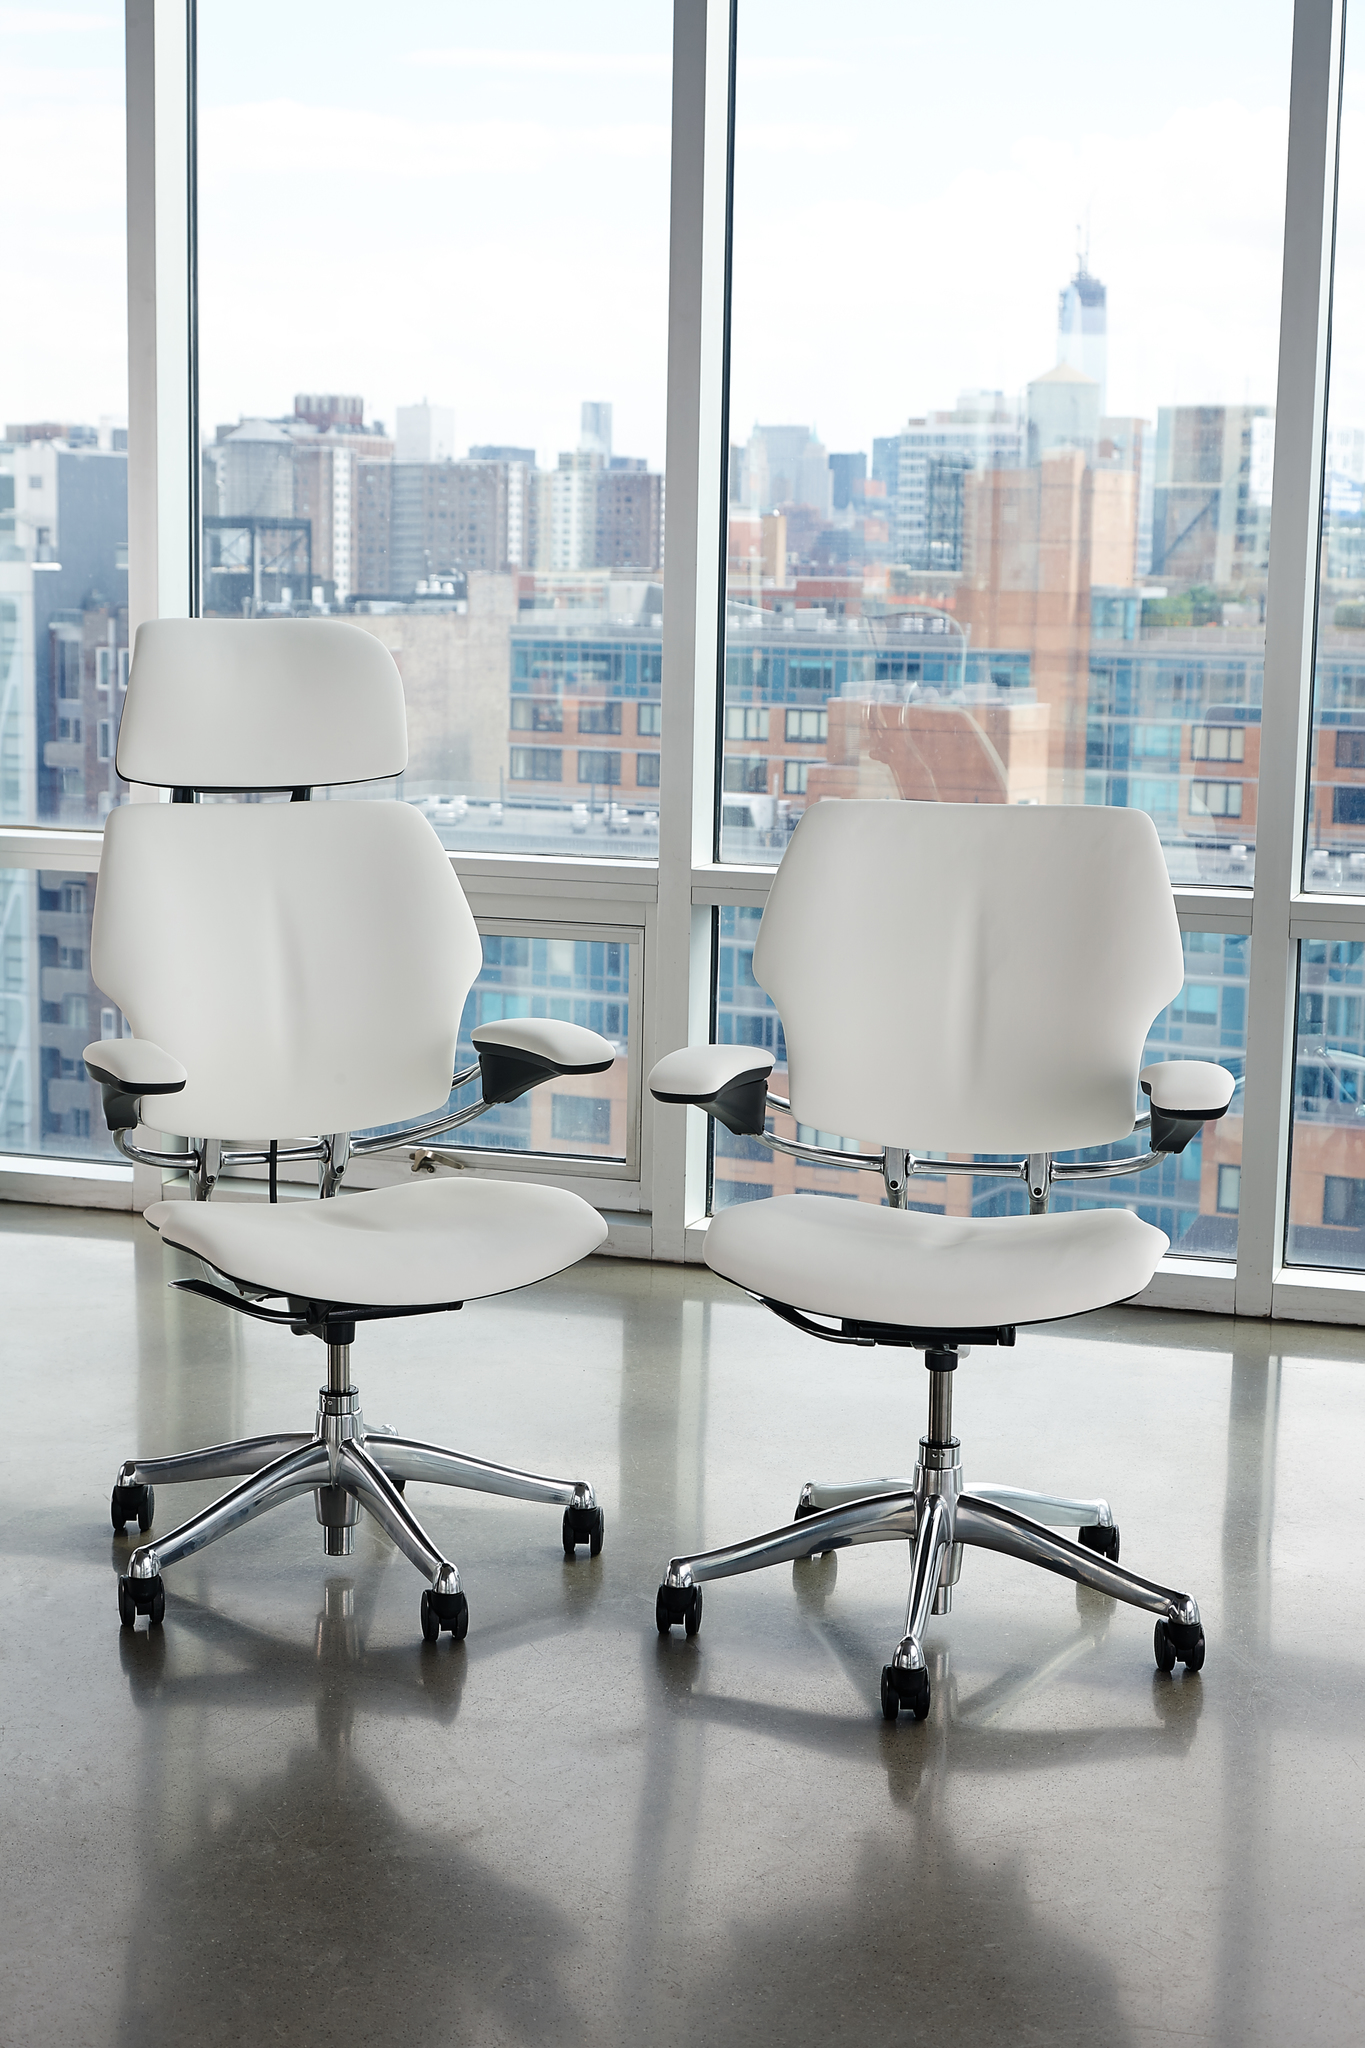 Designed by ergonomic innovator Niels Diffrient, Humanscale's Freedom chairs let users tilt, lean, and recline as needed, without levers and knobs.